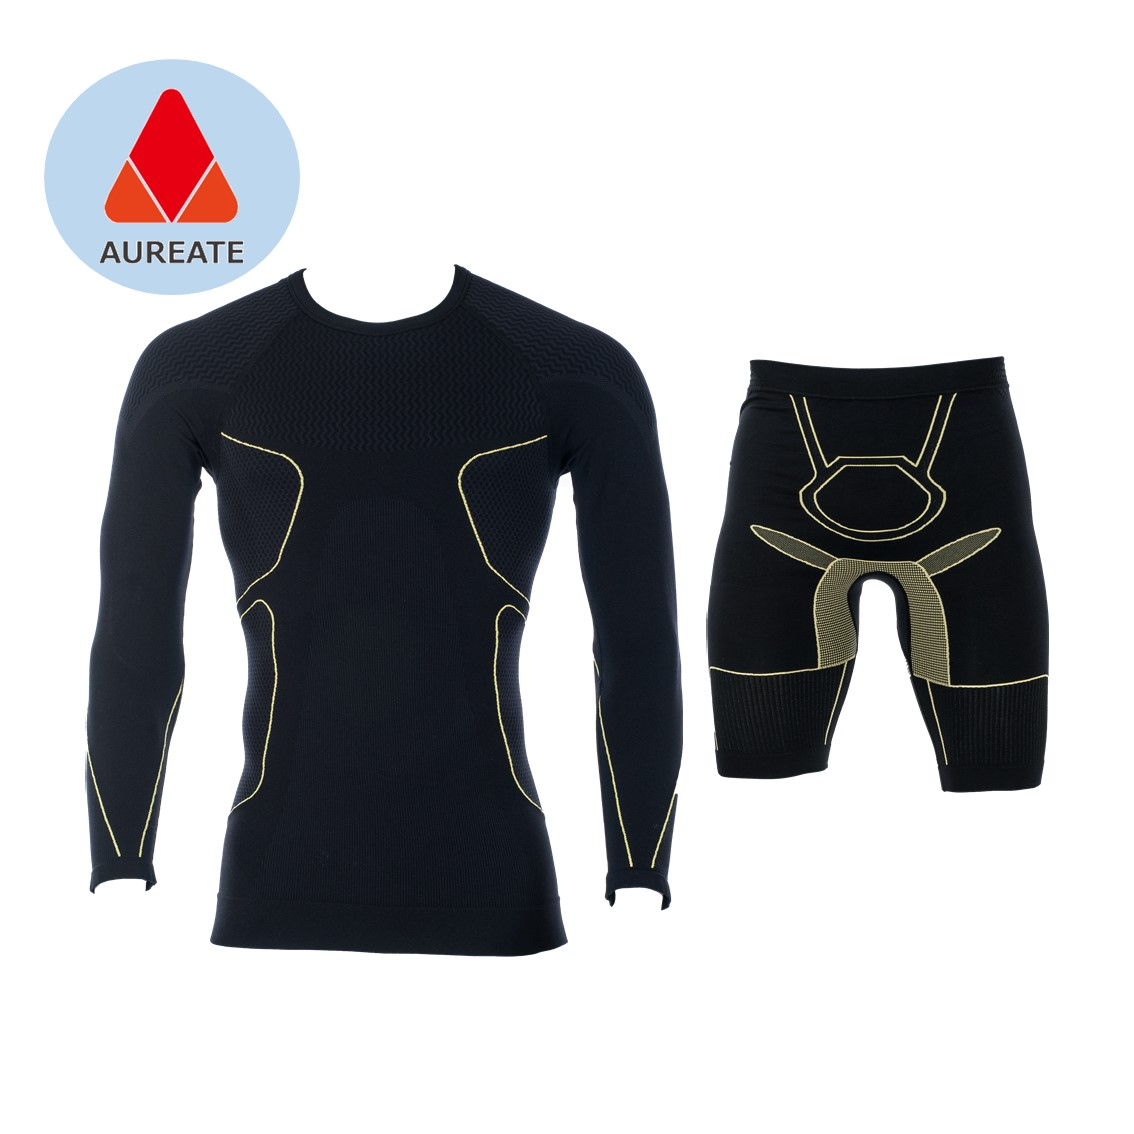 ODM long sleeve t shirt thermal underwear for men